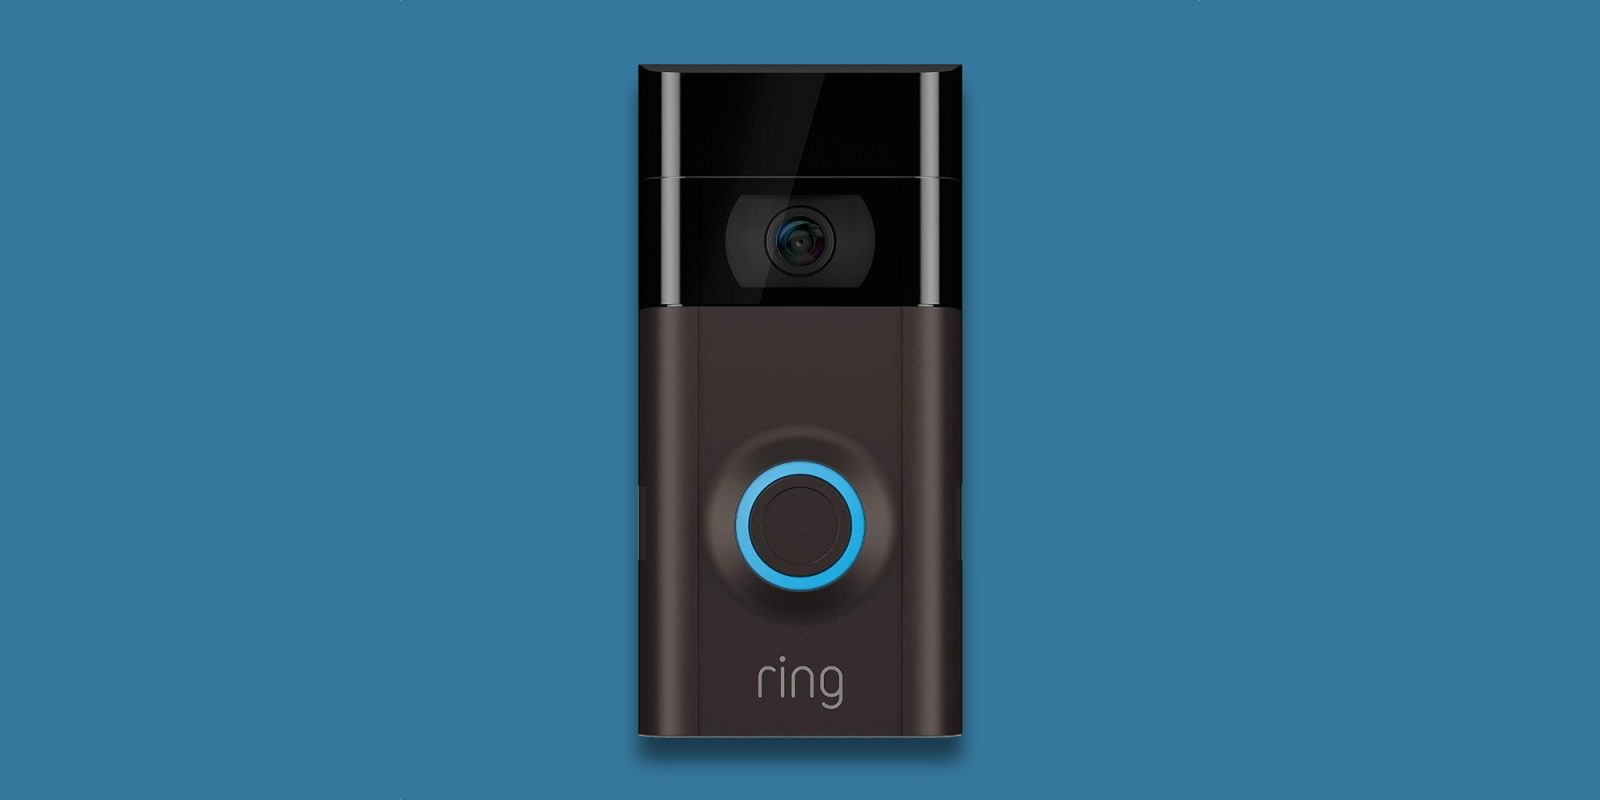 Upgrade to Ring Video Doorbell 2 at over $70 off: $127.50 shipped